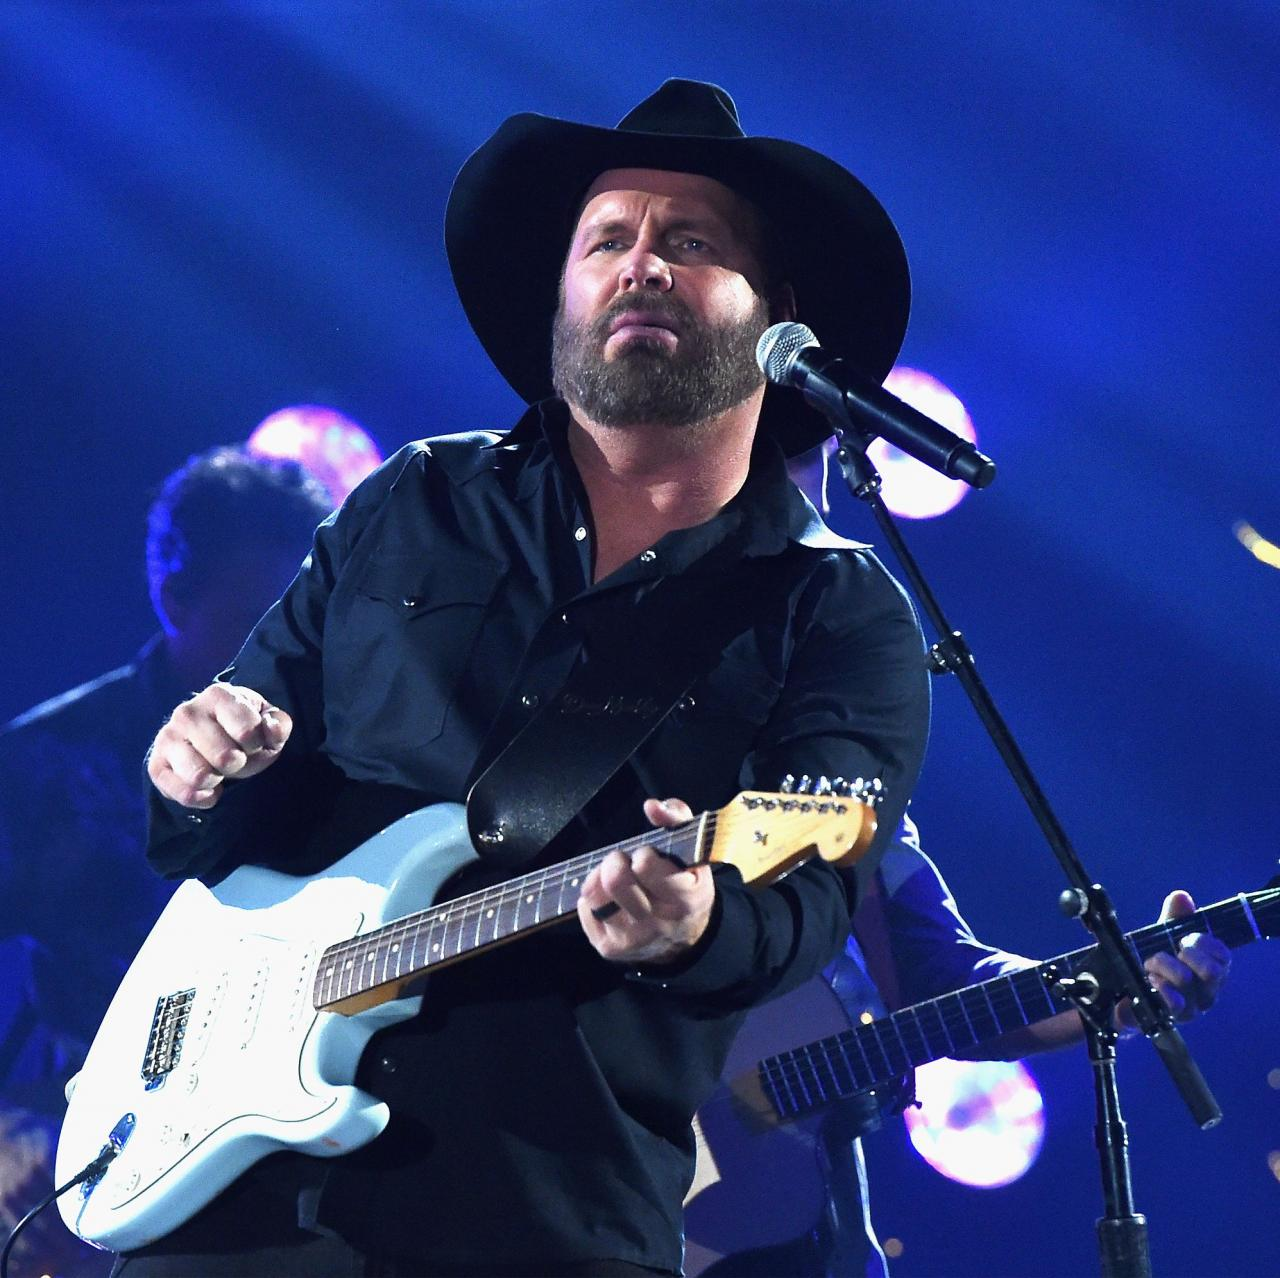 nashville, tn november 08 for editorial use only garth brooks performs onstage at the 51st annual cma awards at the bridgestone arena on november 8, 2017 in nashville, tennessee photo by rick diamondgetty images